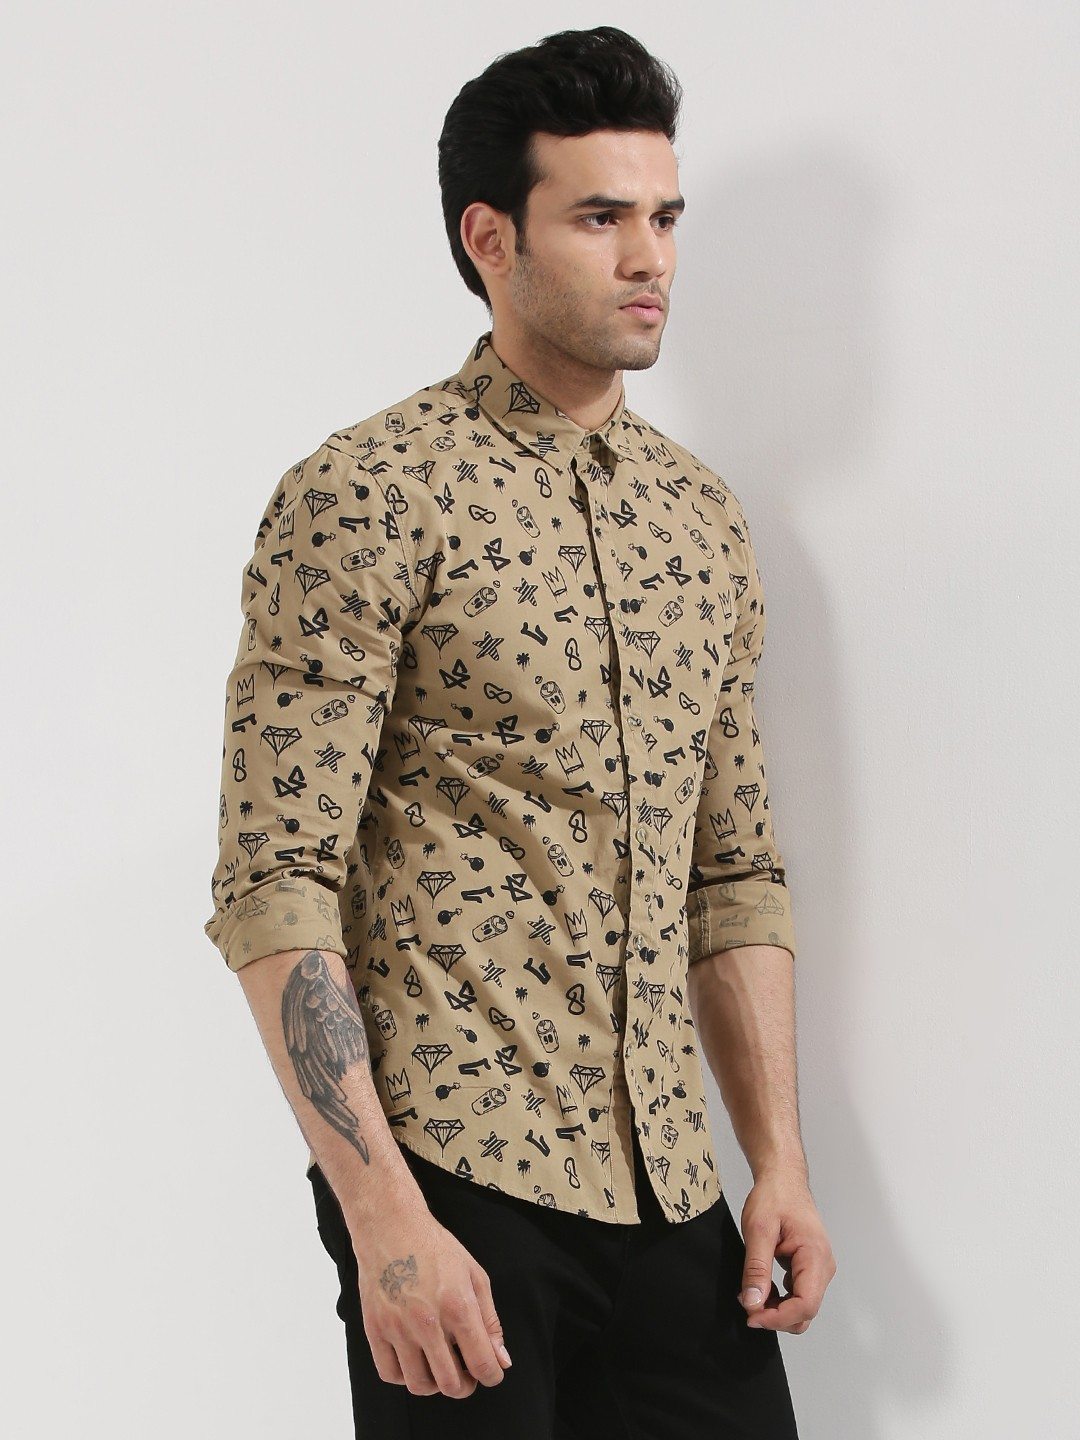 Jack and jones online shopping india